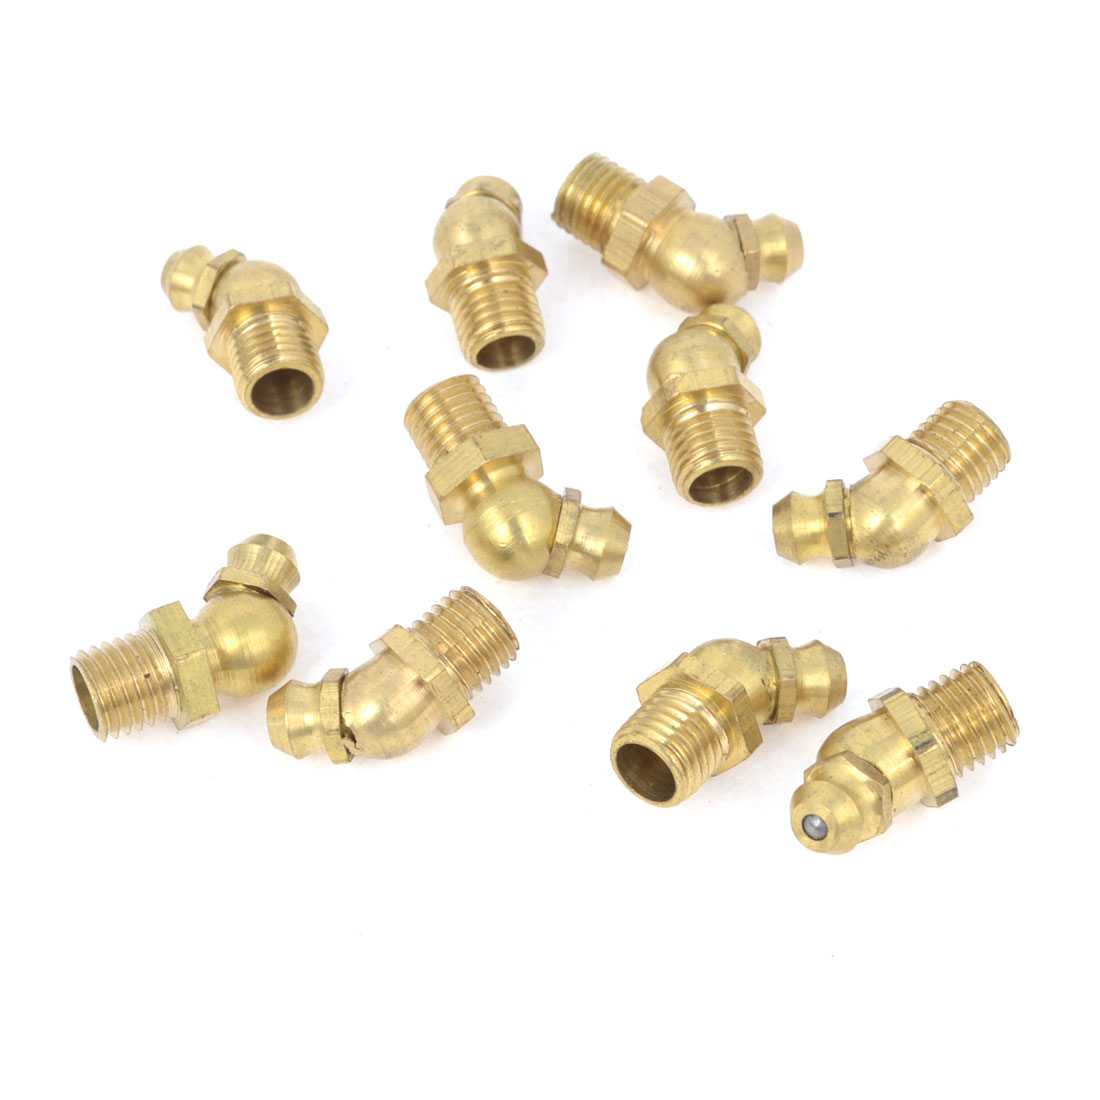 10Pcs M8x1 Thread 45 Degree Angle Hydraulic Grease Nipple Zerk Gold Tone